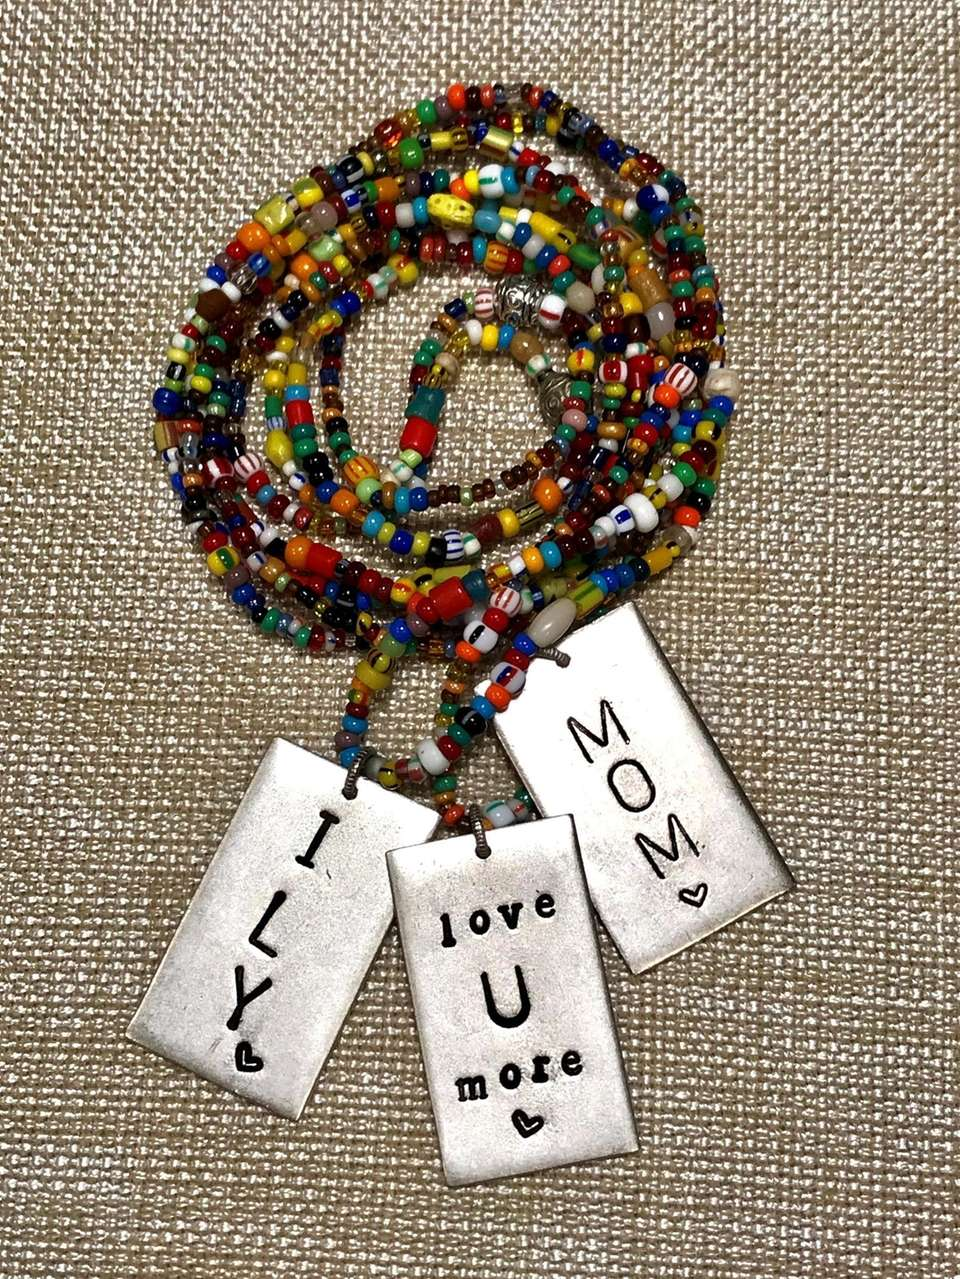 Inspirational, hand-stamped jewelry is a specialty of 24ave,